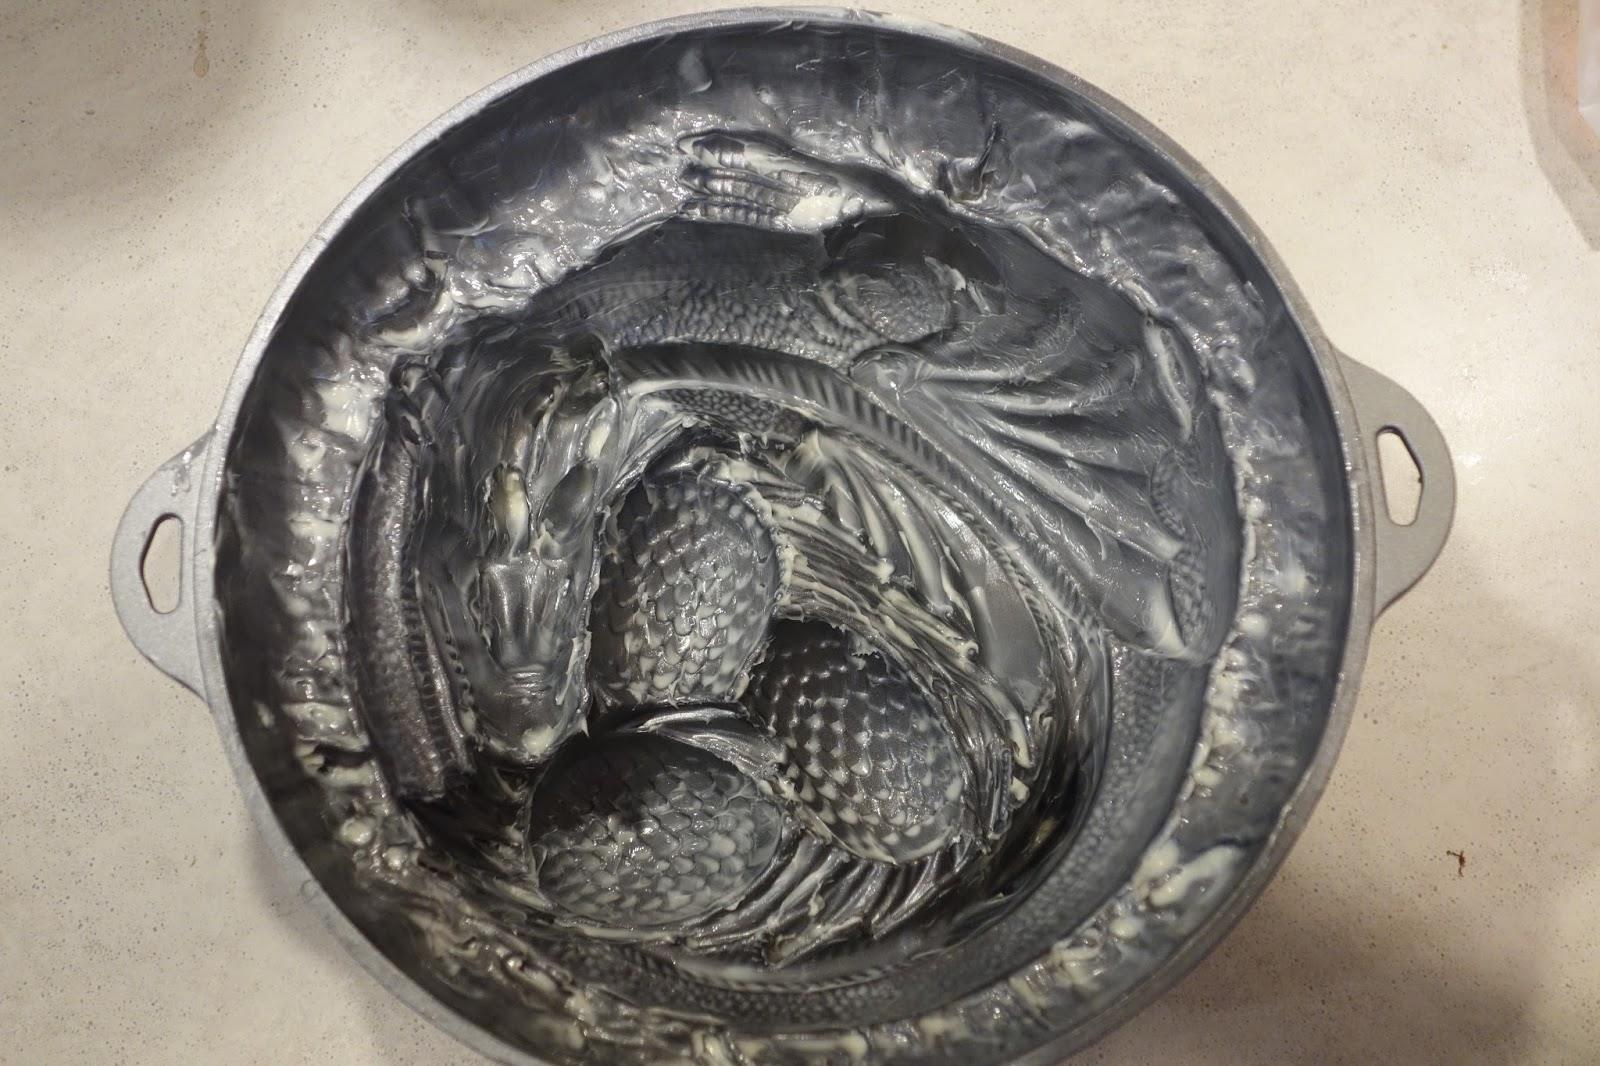 Think Geek Sleeping Dragon Cake Pan